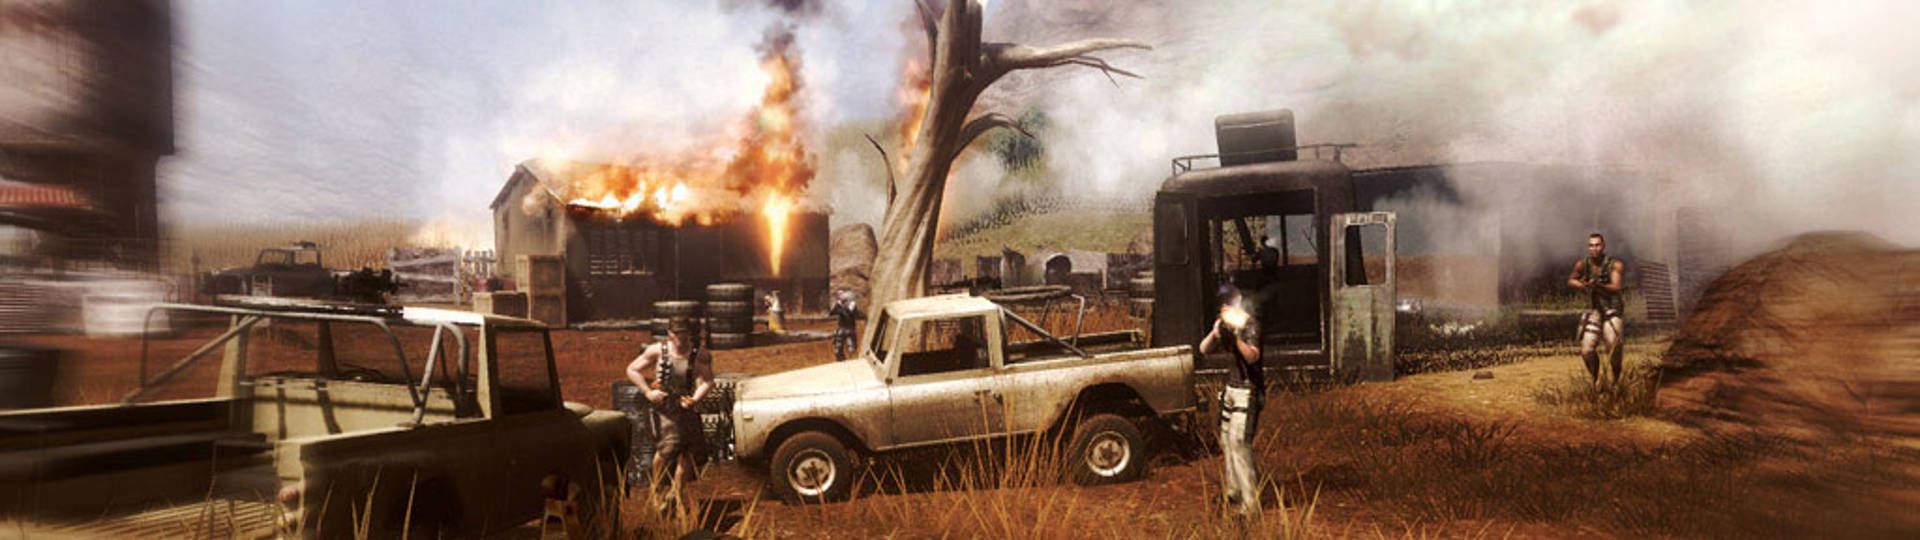 Far Cry 2 Ubisoft Games online features slice